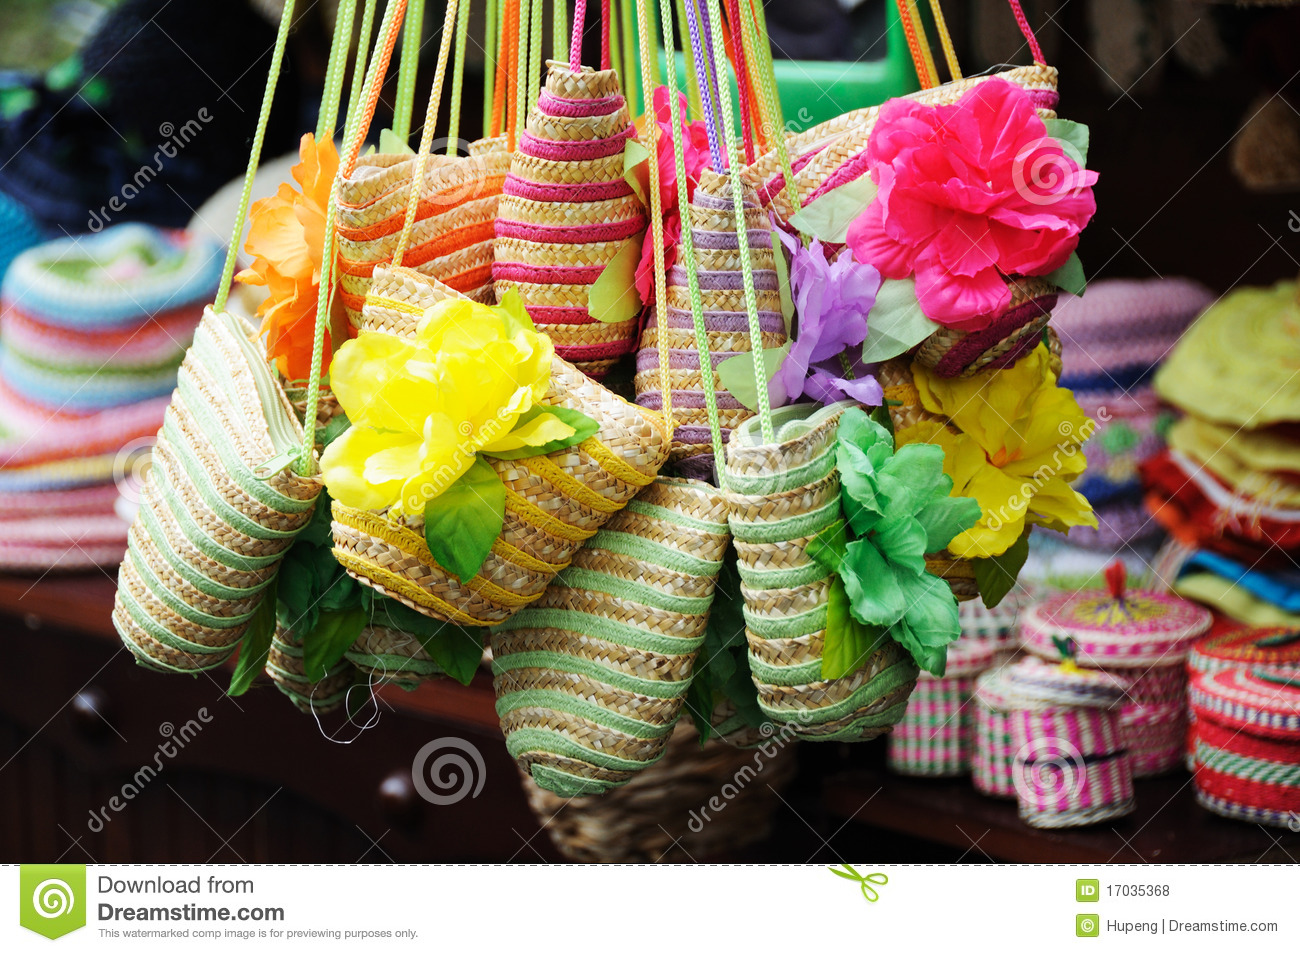 Colorful Straw Handicrafts In Chengdu Jinli Street Royalty Free Stock Photos Image 17035368